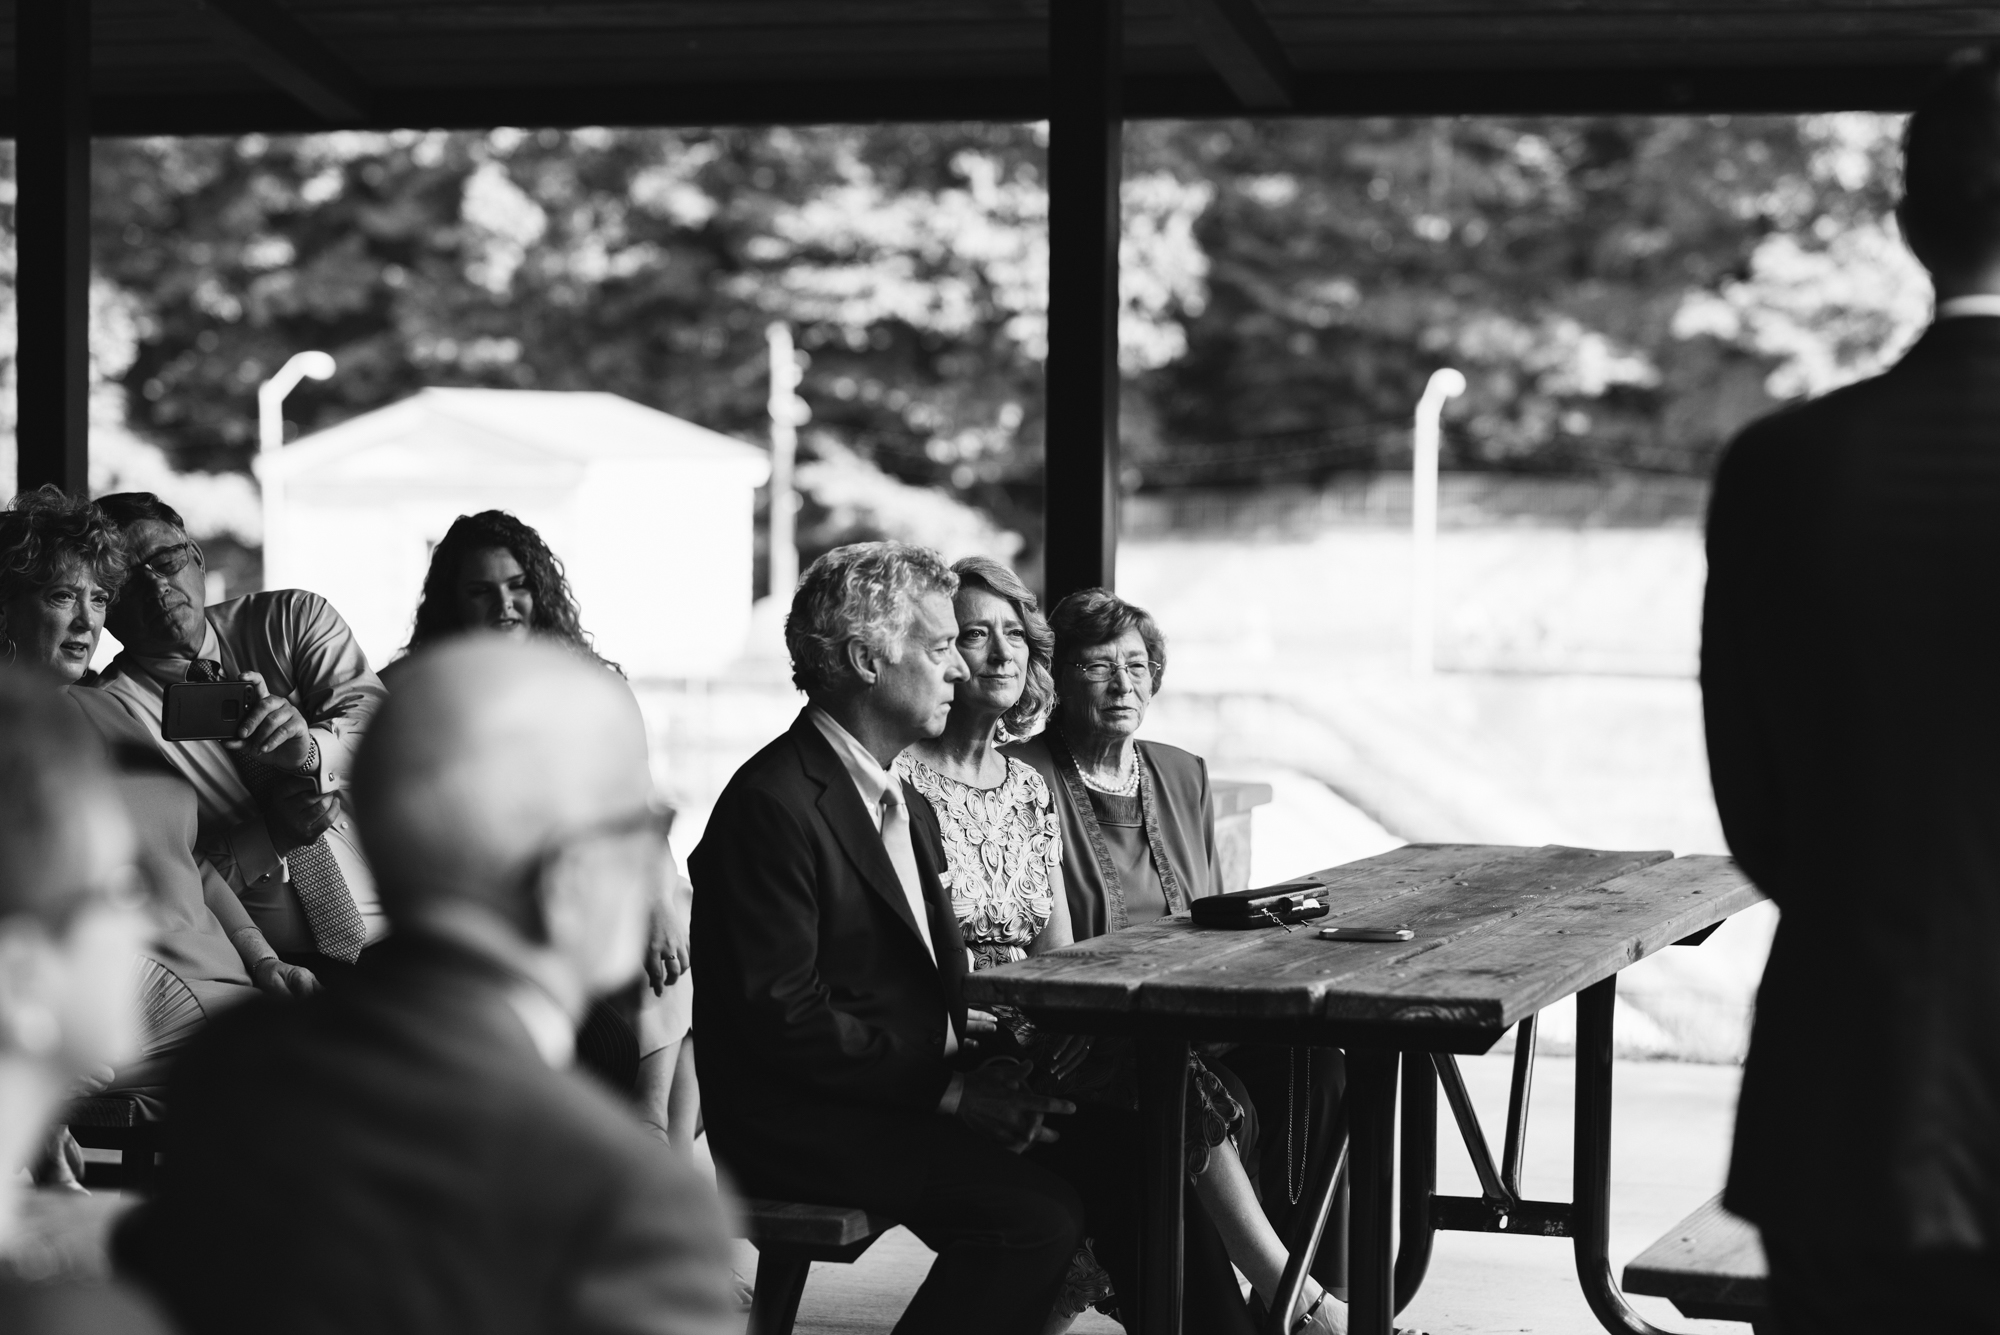 Pop-up Ceremony, Outdoor Wedding, Casual, Simple, Lake Roland, Baltimore, Maryland Wedding Photographer, Laid Back, DIY, Park Pavilion, Black and White Photo, Bride's Reactions During Ceremony